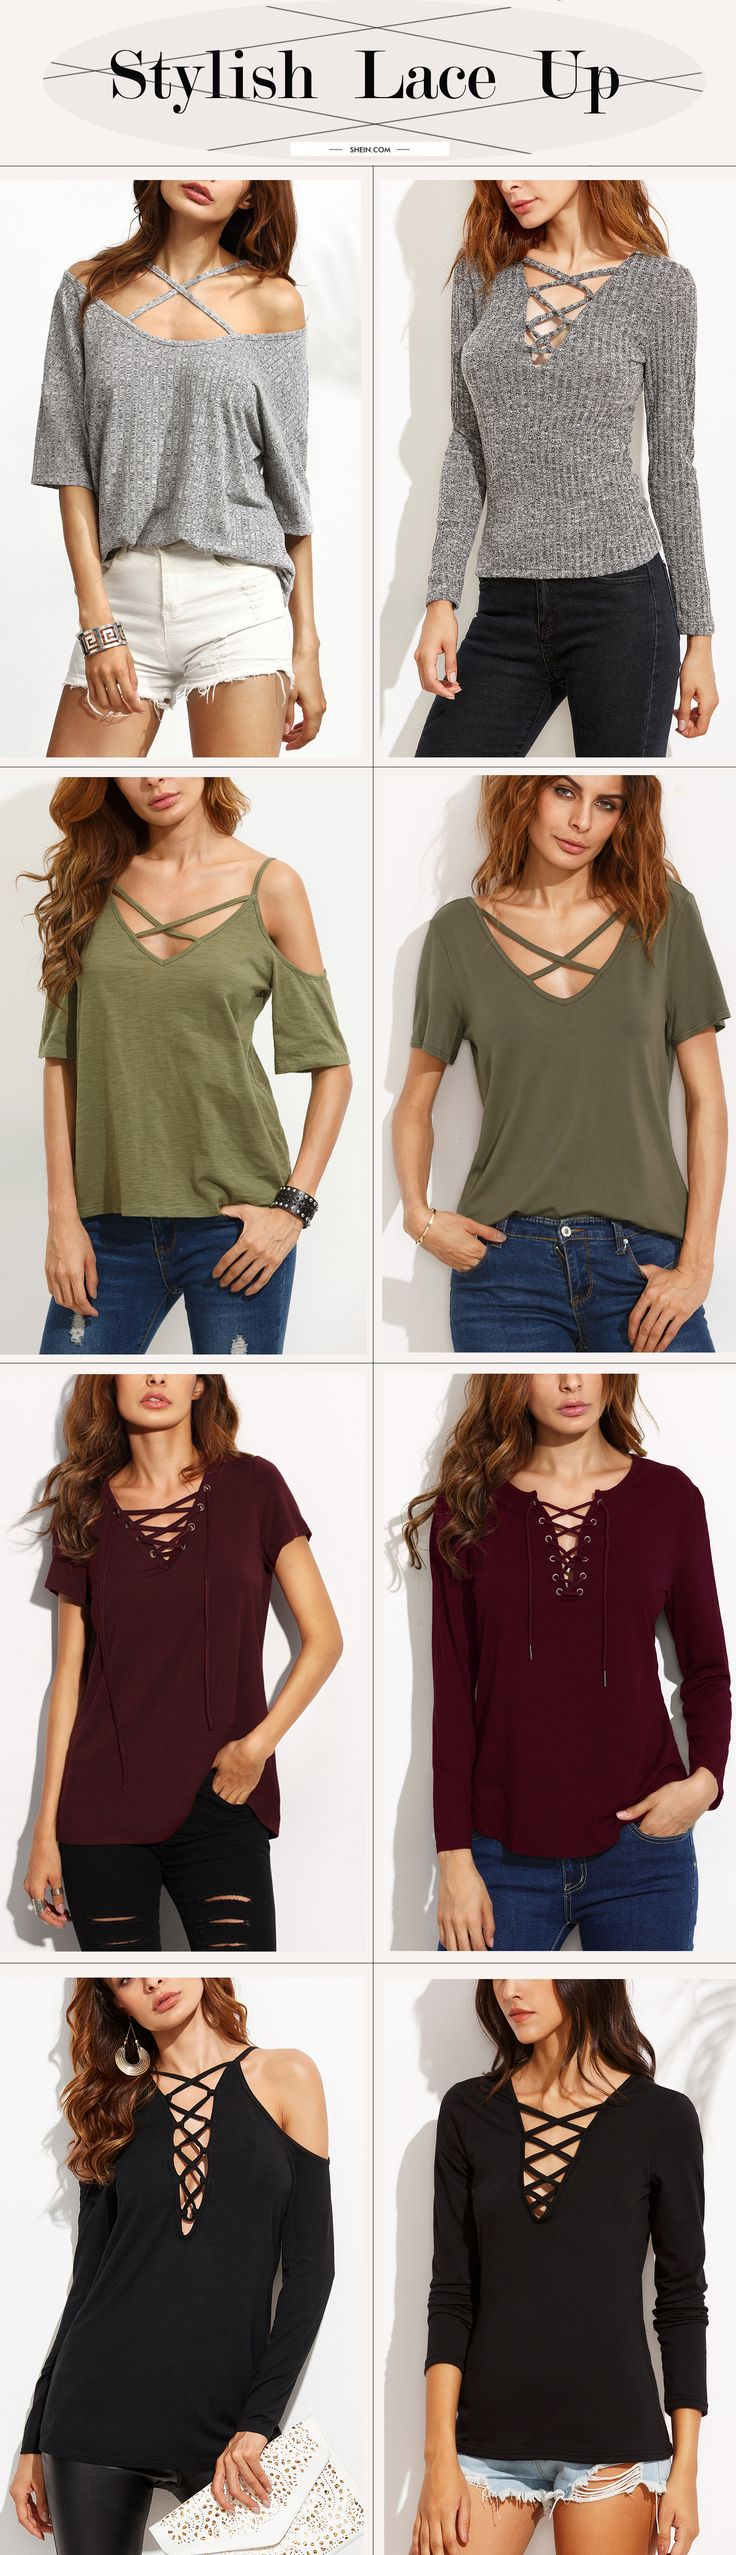 Hot lace up top collection for summer/fall. Stylish casual style.